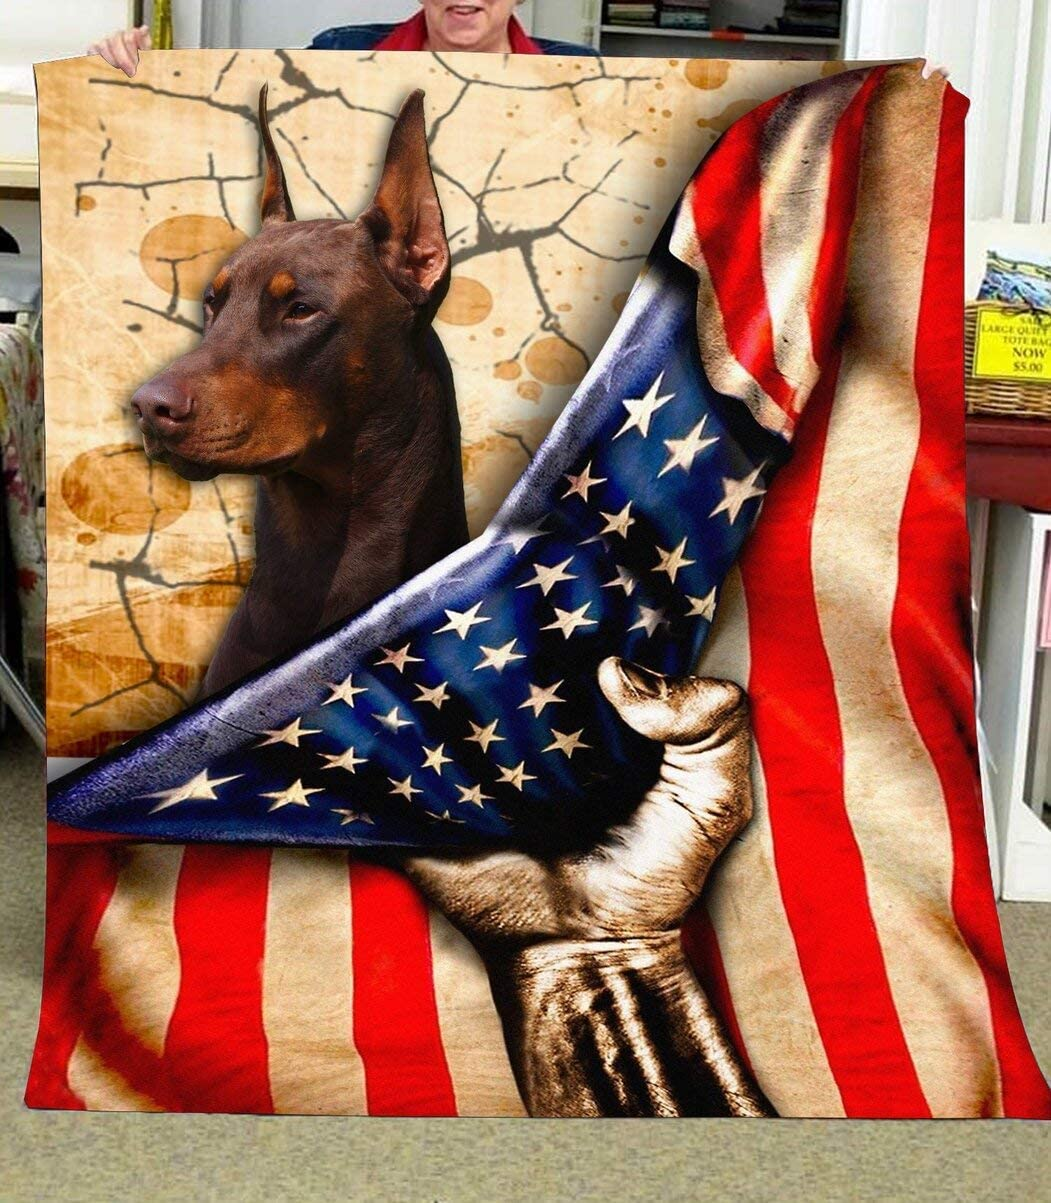 Personalized Doberman Quilt Dealing full price reduction 35% OFF Behind USA Flag Son to Daught